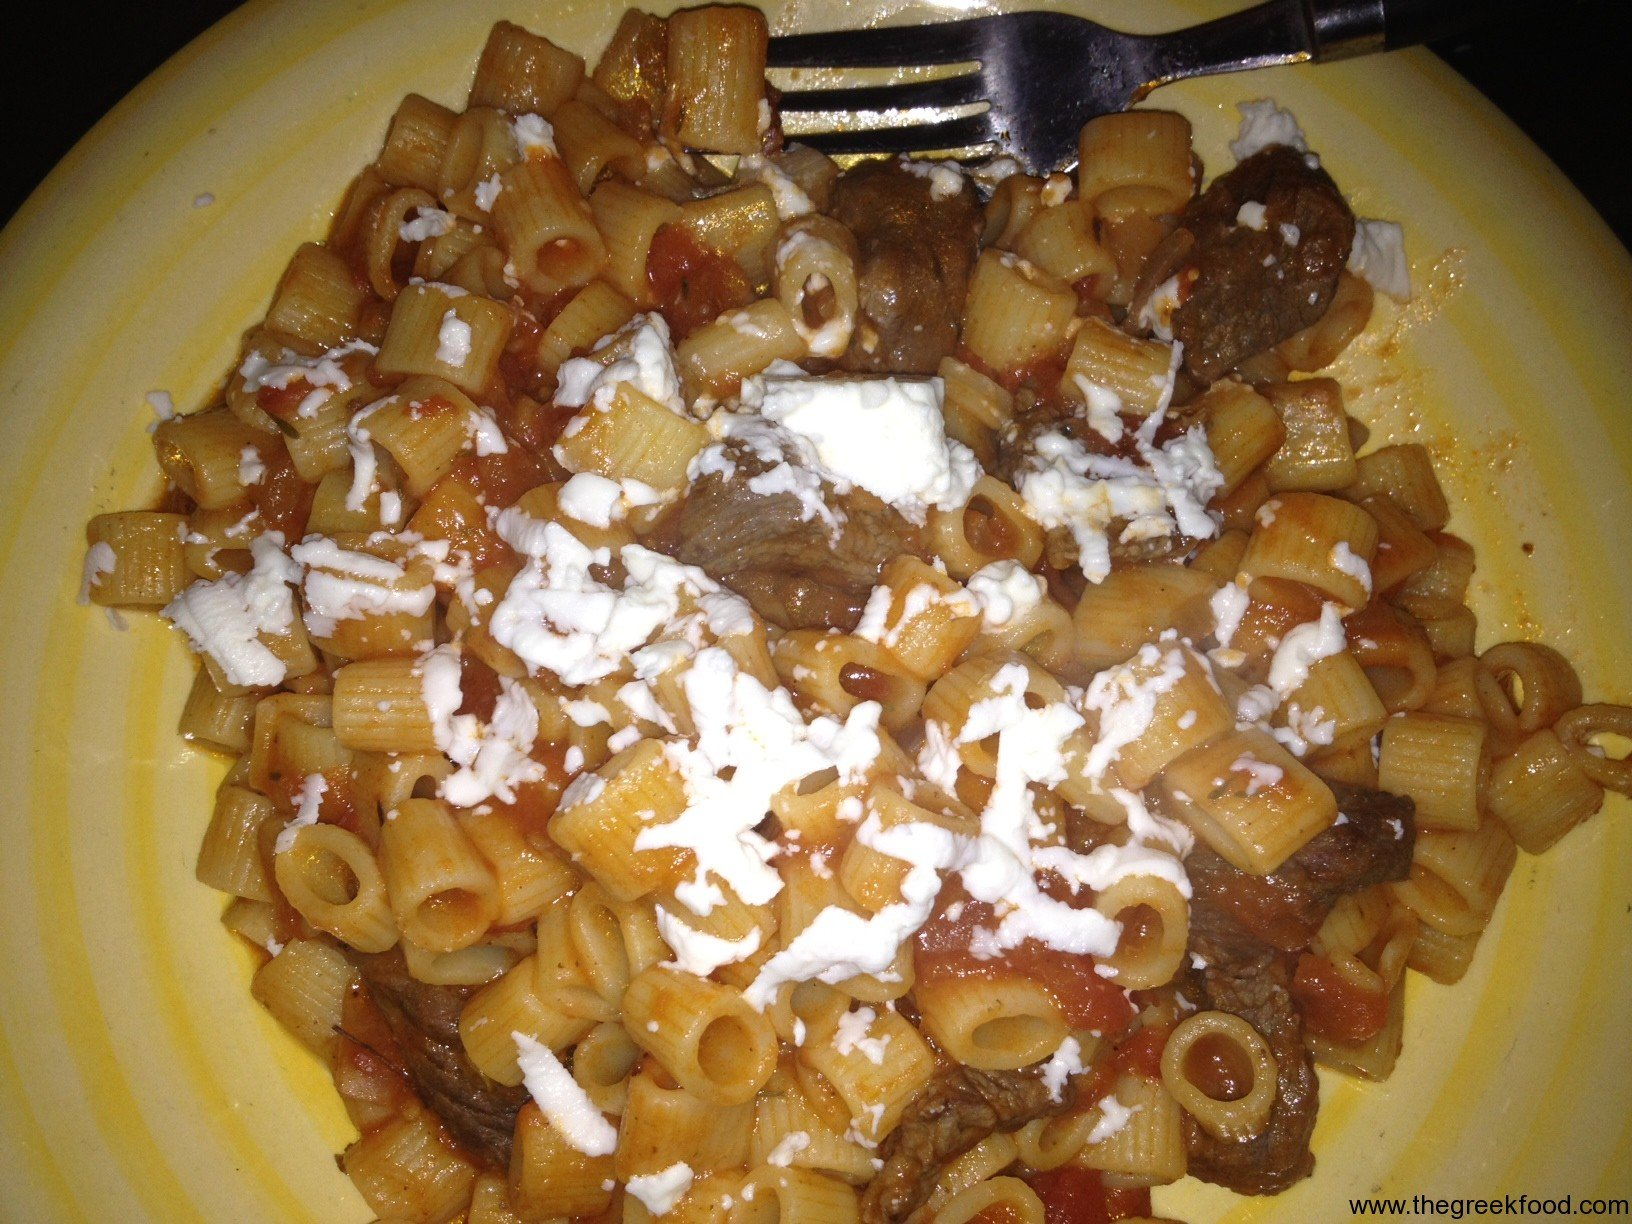 Beef stew with red sauce and pasta